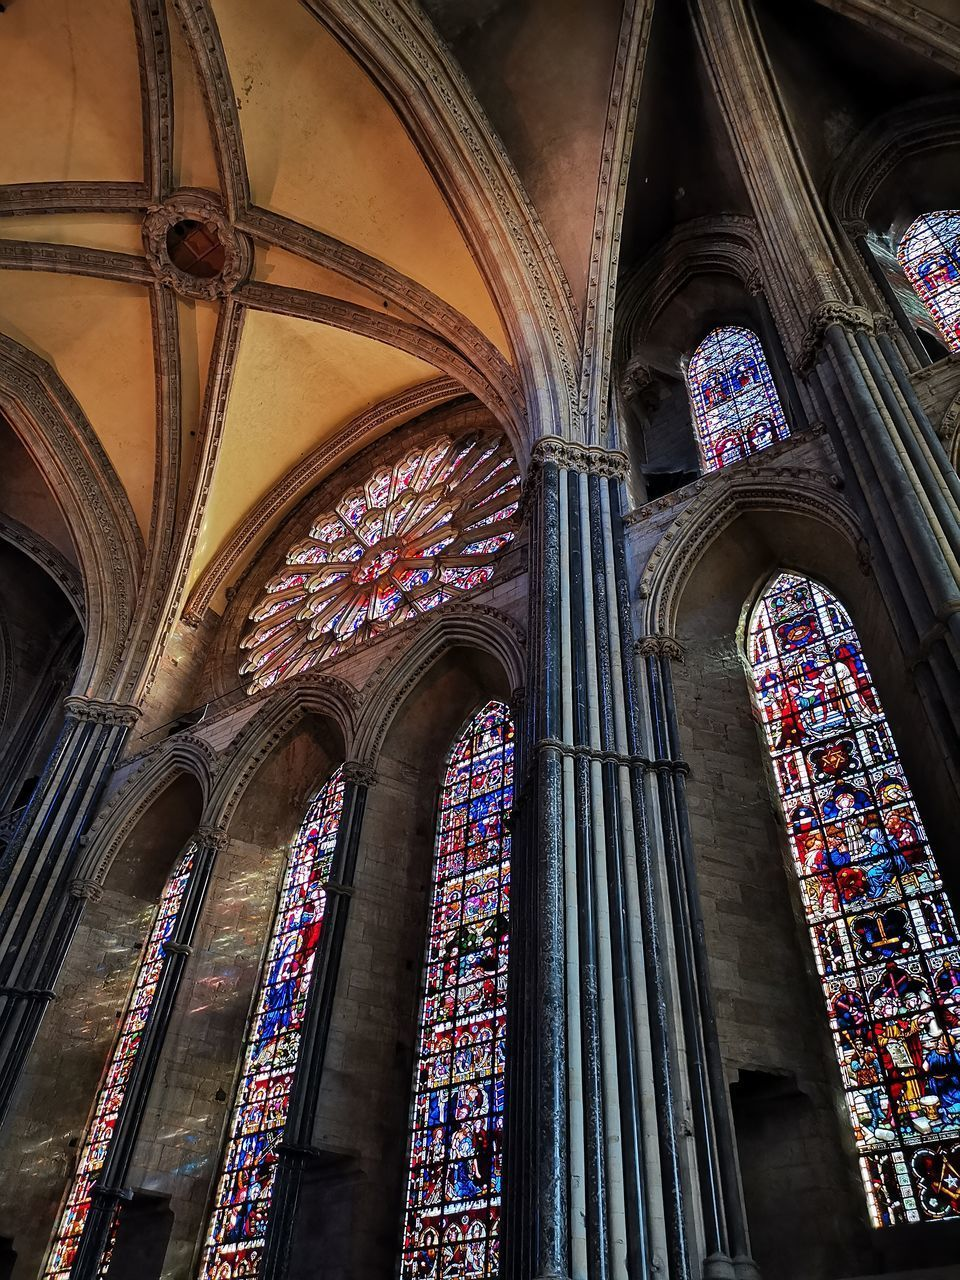 architecture, built structure, low angle view, place of worship, religion, spirituality, building, belief, arch, stained glass, indoors, architectural column, no people, glass, window, ceiling, architecture and art, abbey, gothic style